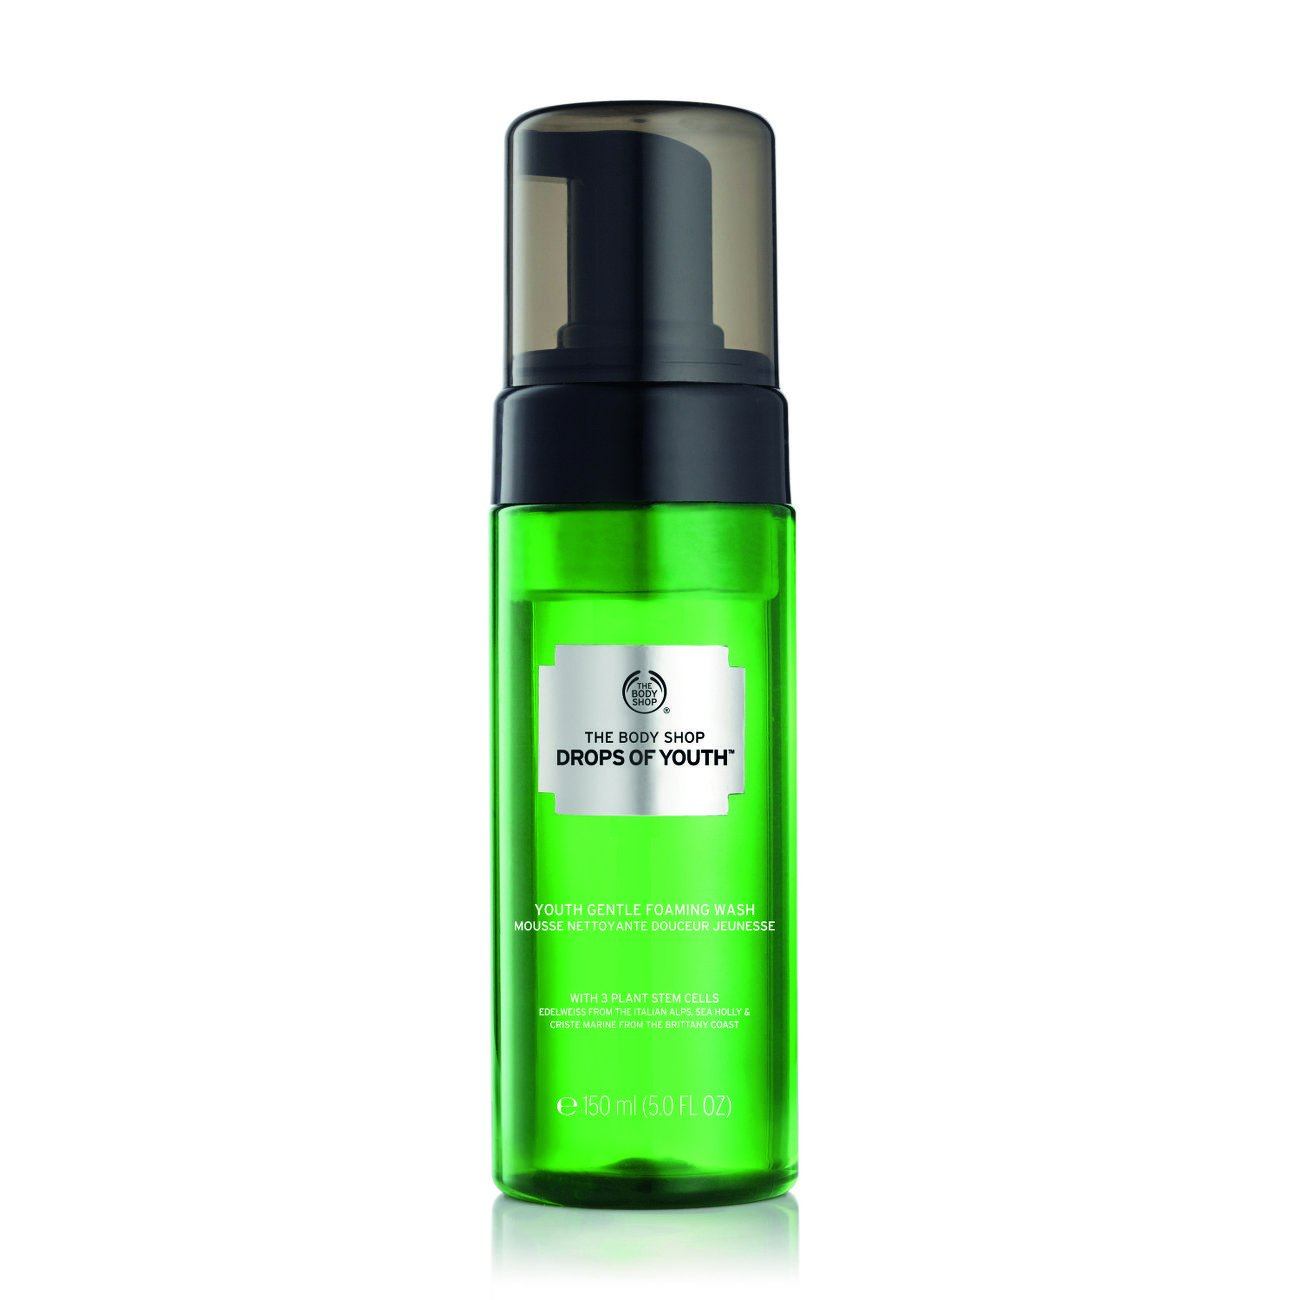 The Body Shop Drops of Youth Youth Gentle Foamwash 150ml